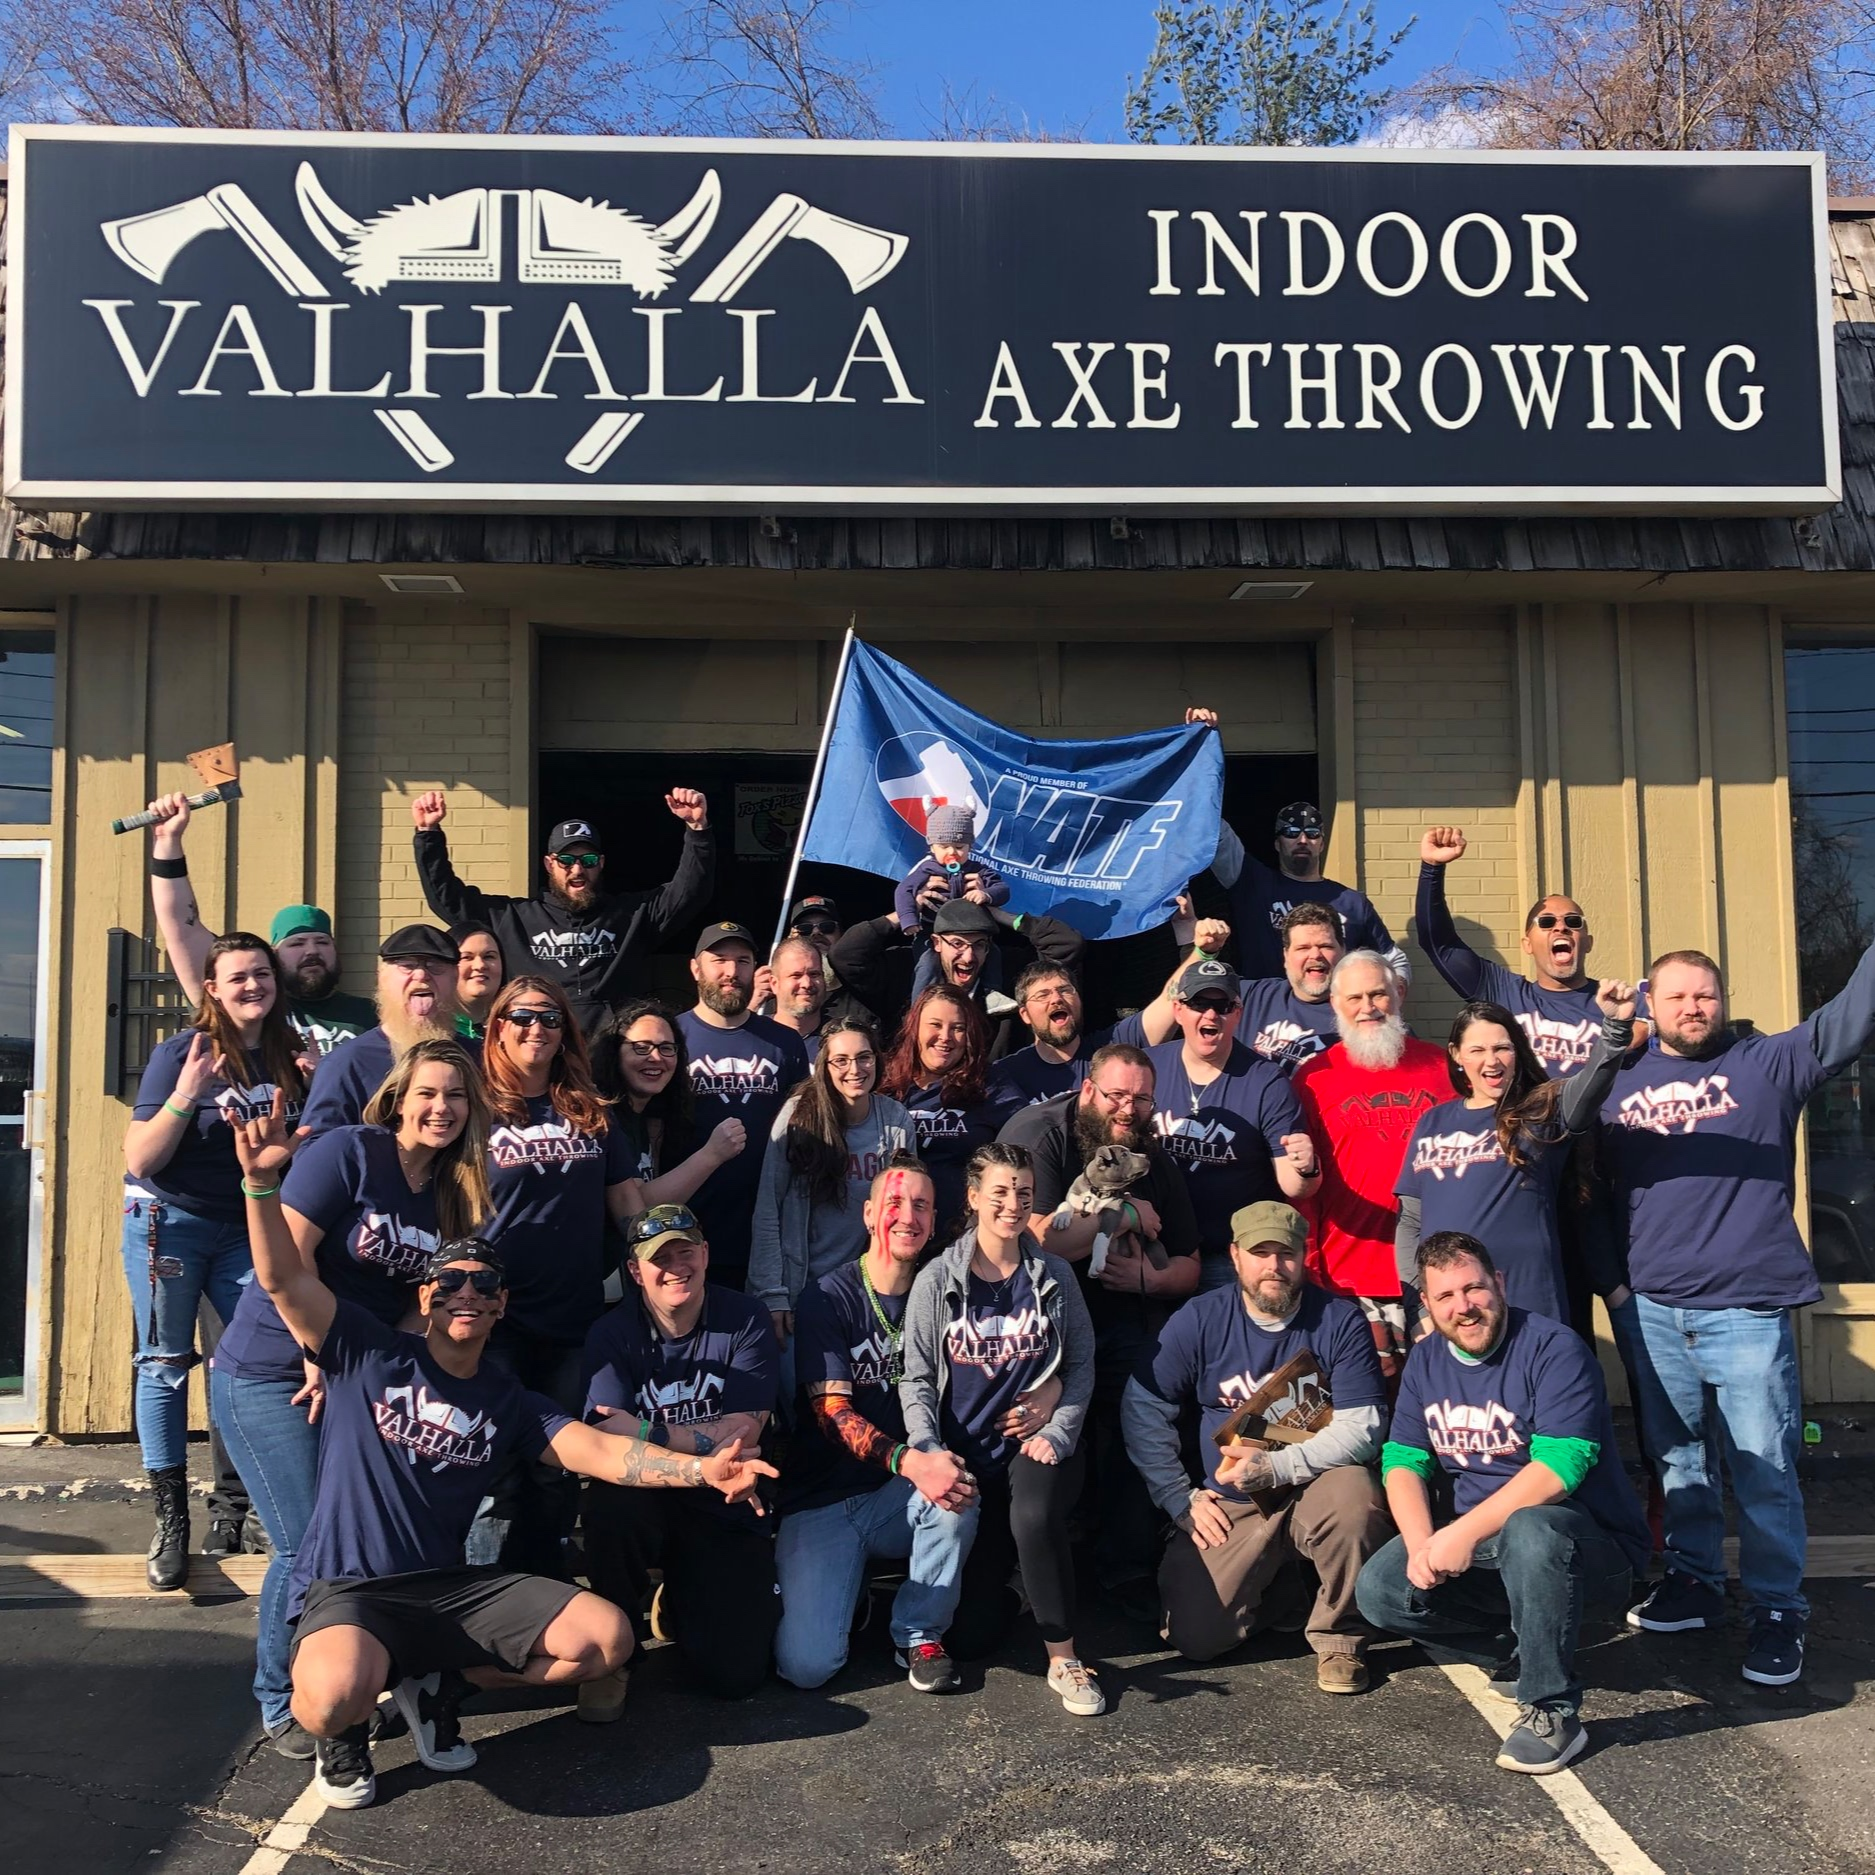 Join Valhalla's SAVAGE Axe Throwing League! - Join today- compete weekly in house against other savages. Travel the world being a competitive axe thrower on behalf of Valhalla Indoor Axe Throwing in the National Axe Throwing Federation. Win cash prizes for your incredible hand-eye coordination. Do it all with some of the best people you will ever meet!Complete the form below to sign up for our Summer League starting the first week of July! Must be 18+ to compete. $150 is the cost per season. You will be sent an invoice right after you sign up. Once your invoice is paid in full, your spot is reserved on the roster. Enjoy all of the perks of being a league member at Valhalla!